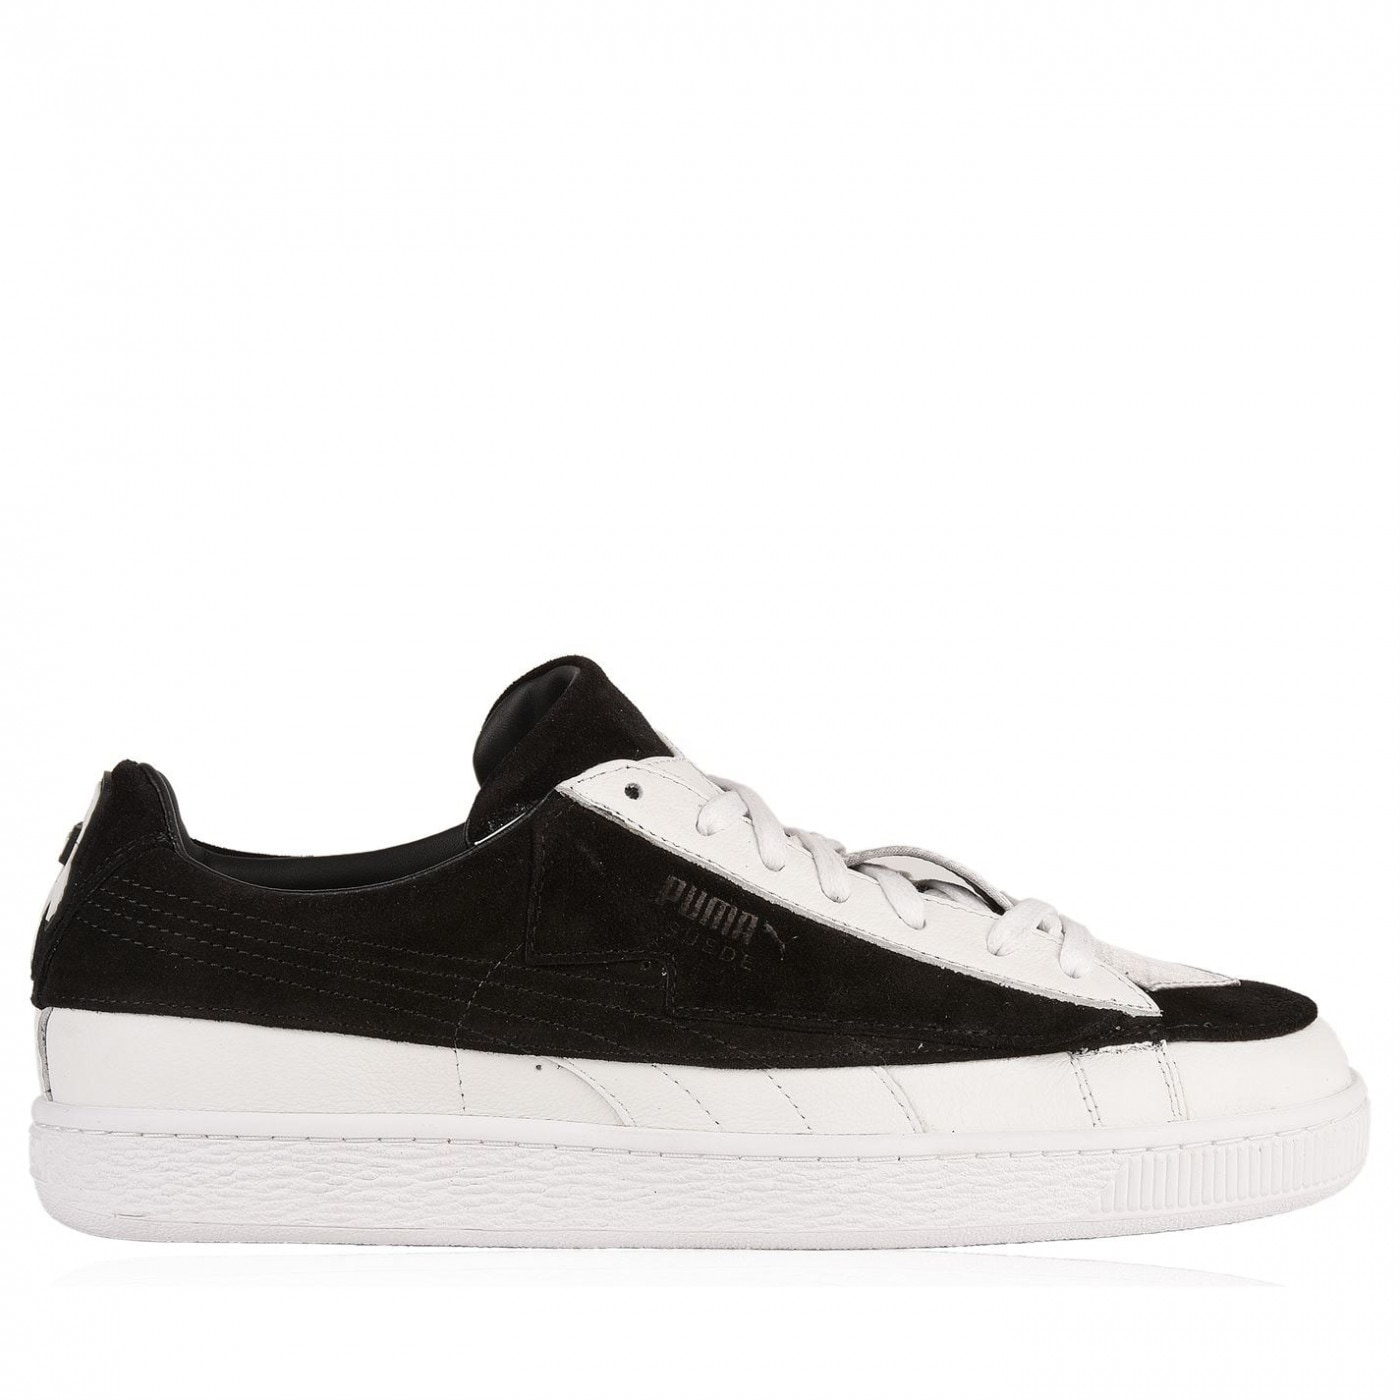 Puma Karl Lagerfeld Suede Classic Trainers